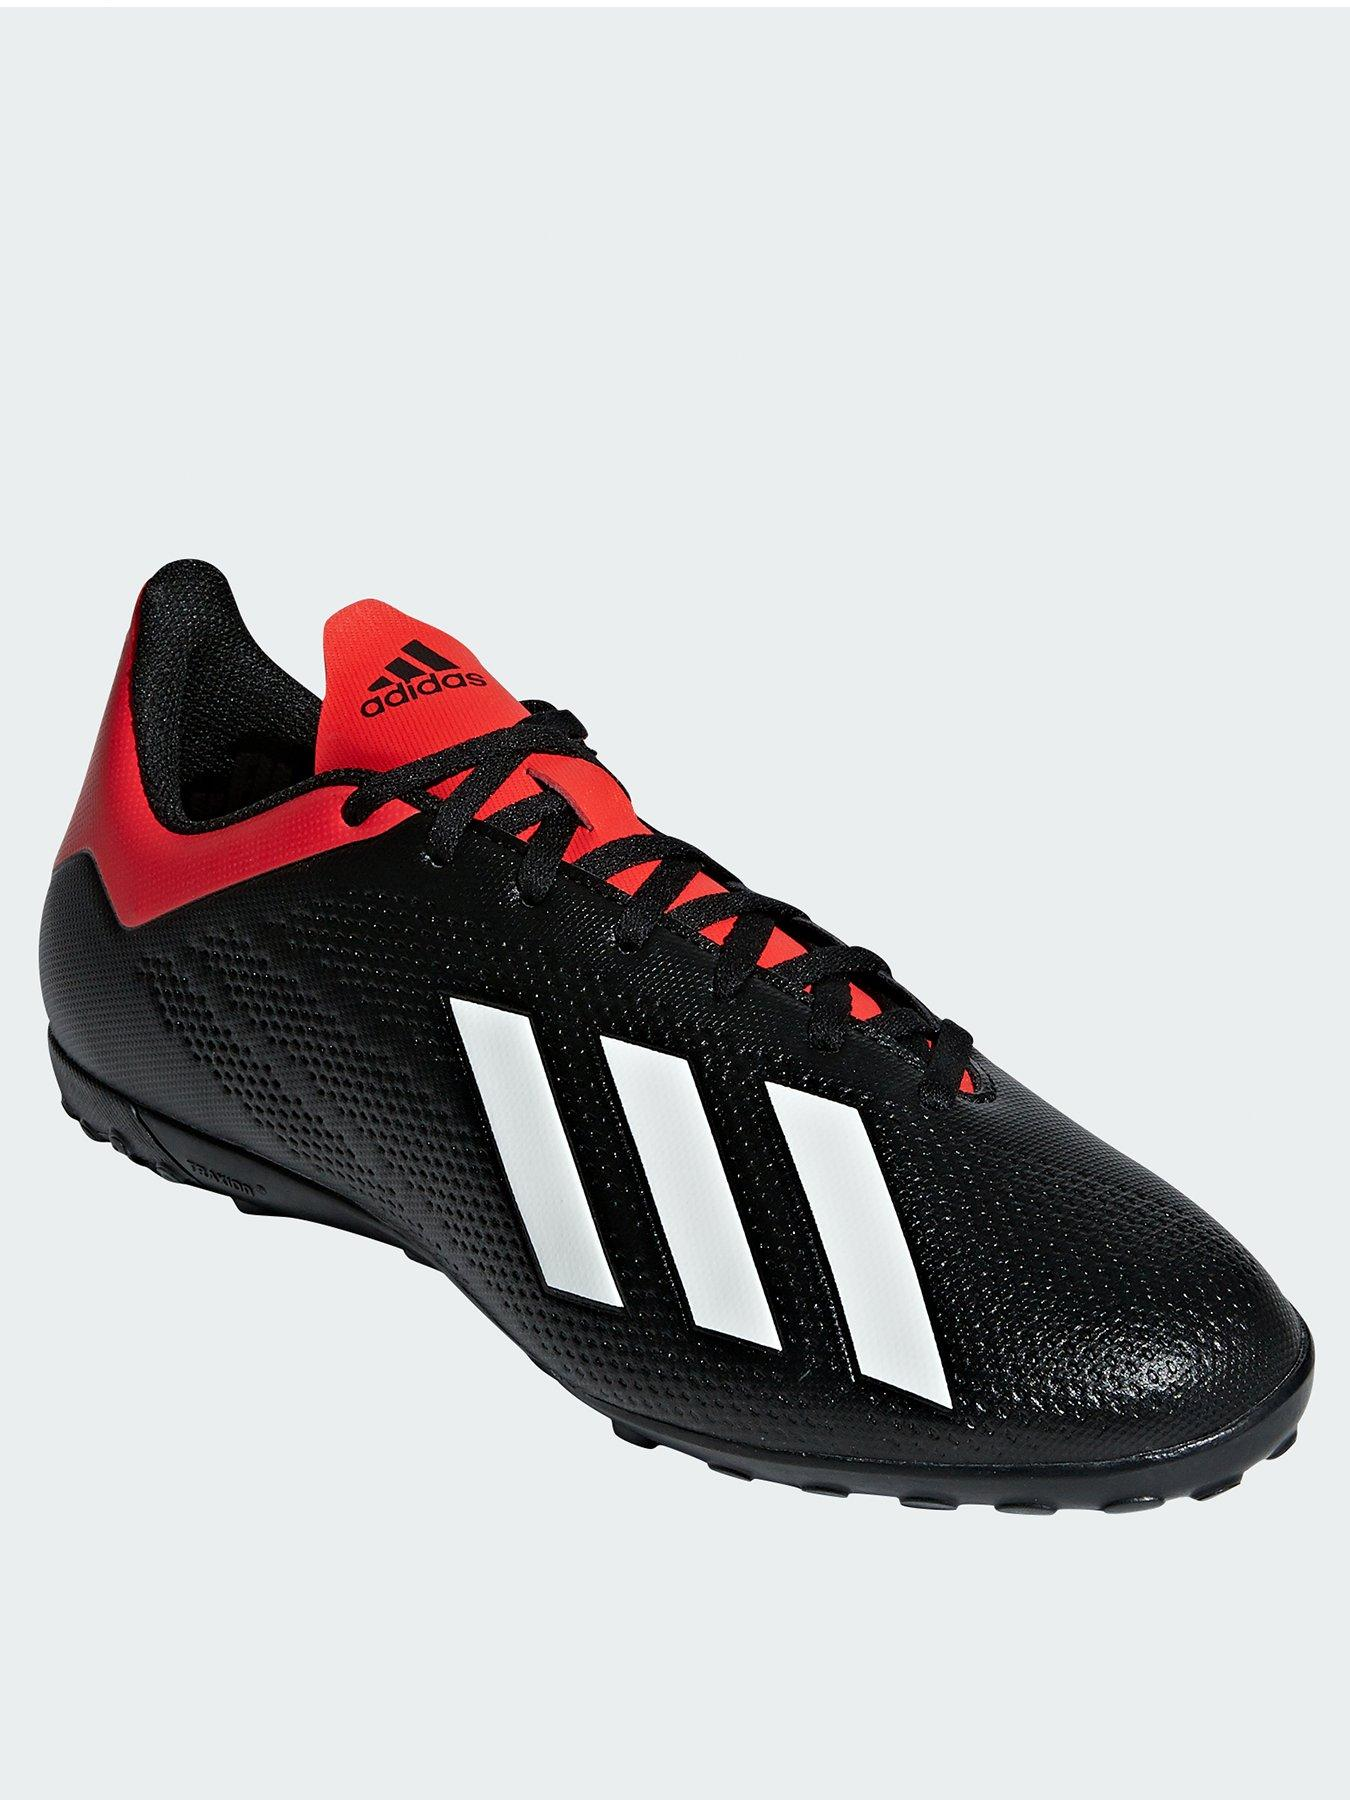 adidas astro turf trainers size 7